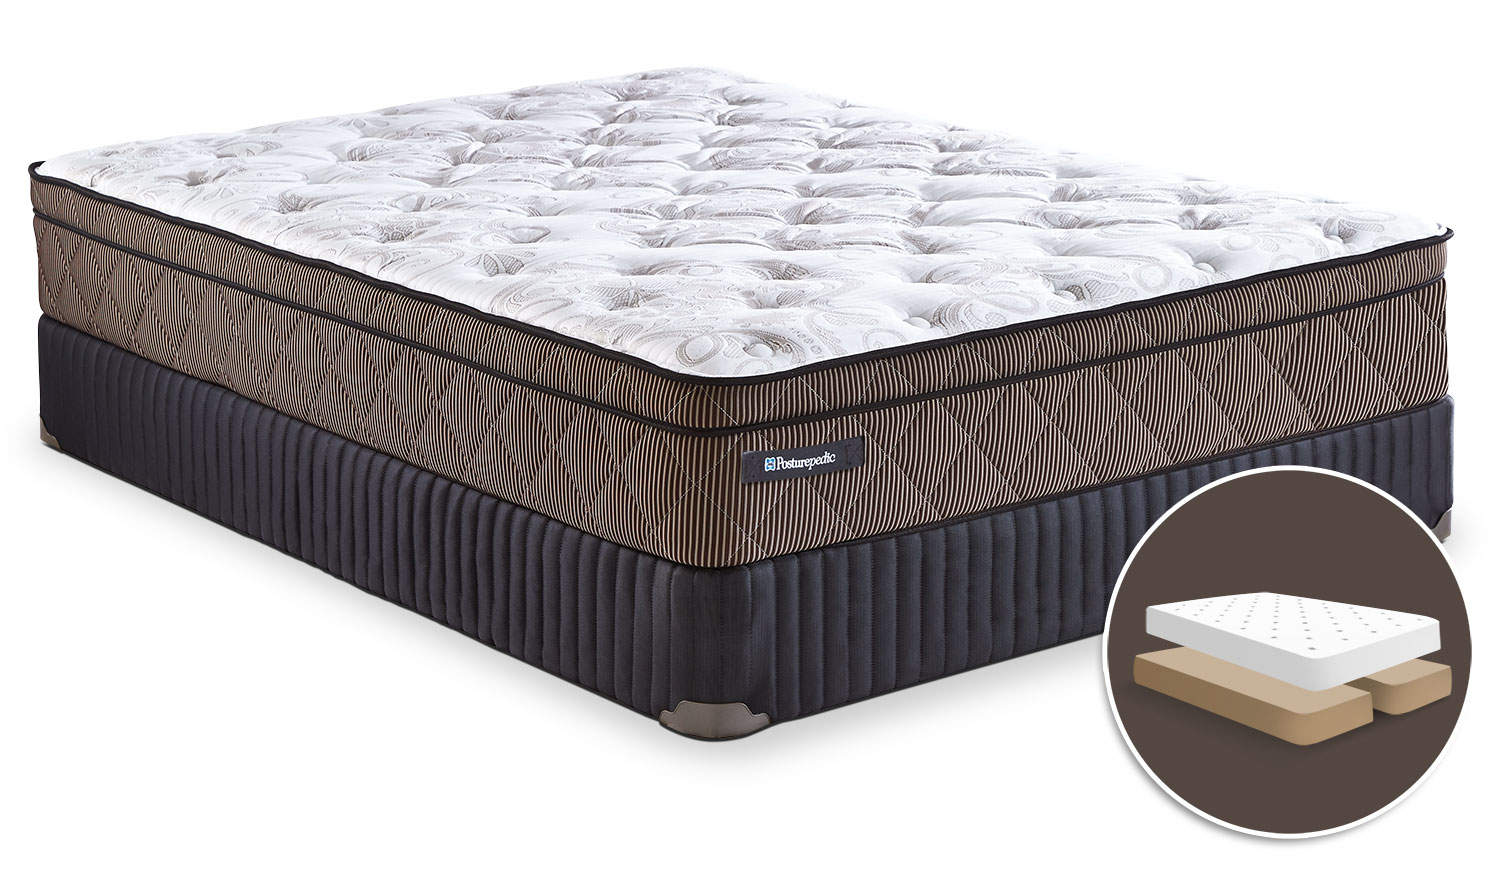 Sealy Posturepedic Crown Jewel Riverfront Euro-Top Queen Mattress and Split Boxspring Set